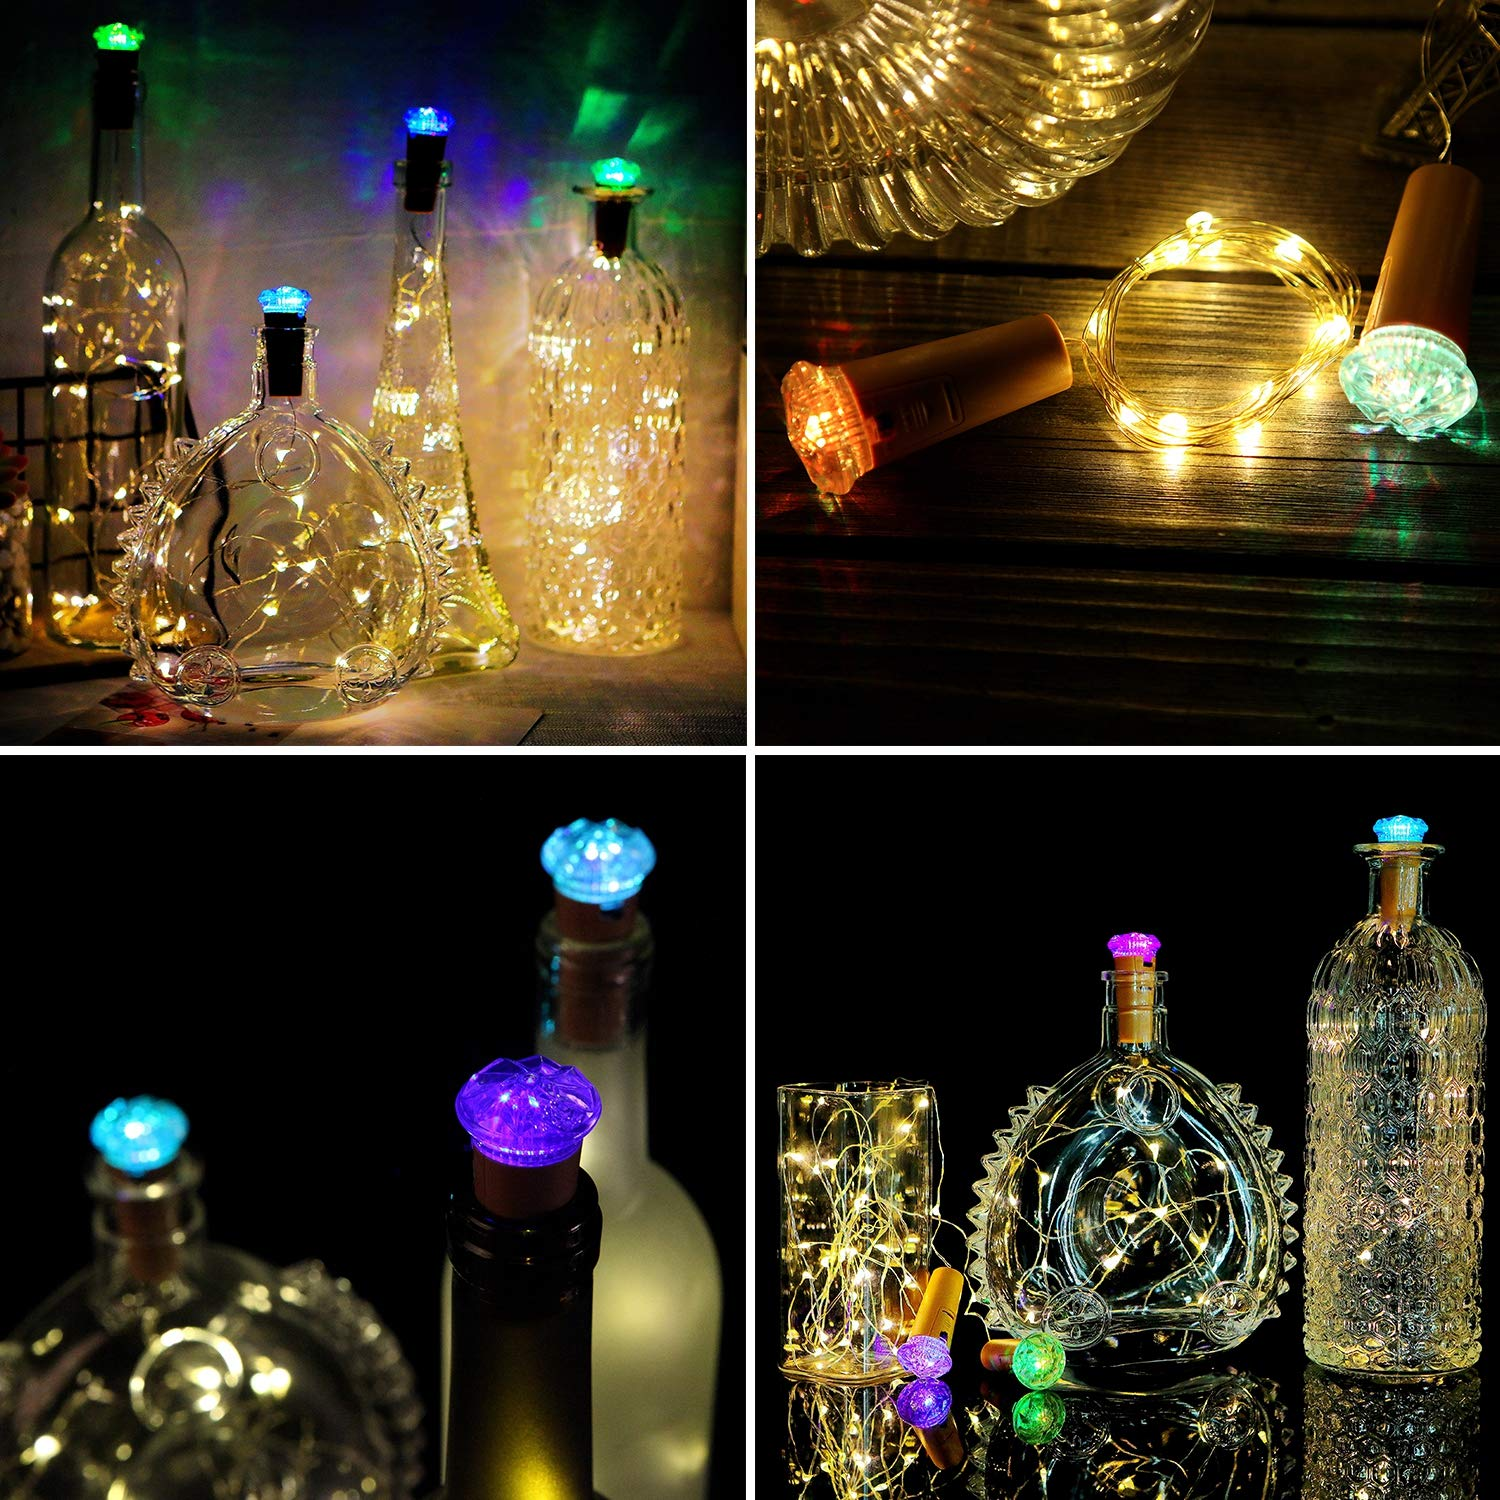 Fairy Lights with Bottle Cork and LED Diamond - Battery Operated | Pack of 10 - Chronos